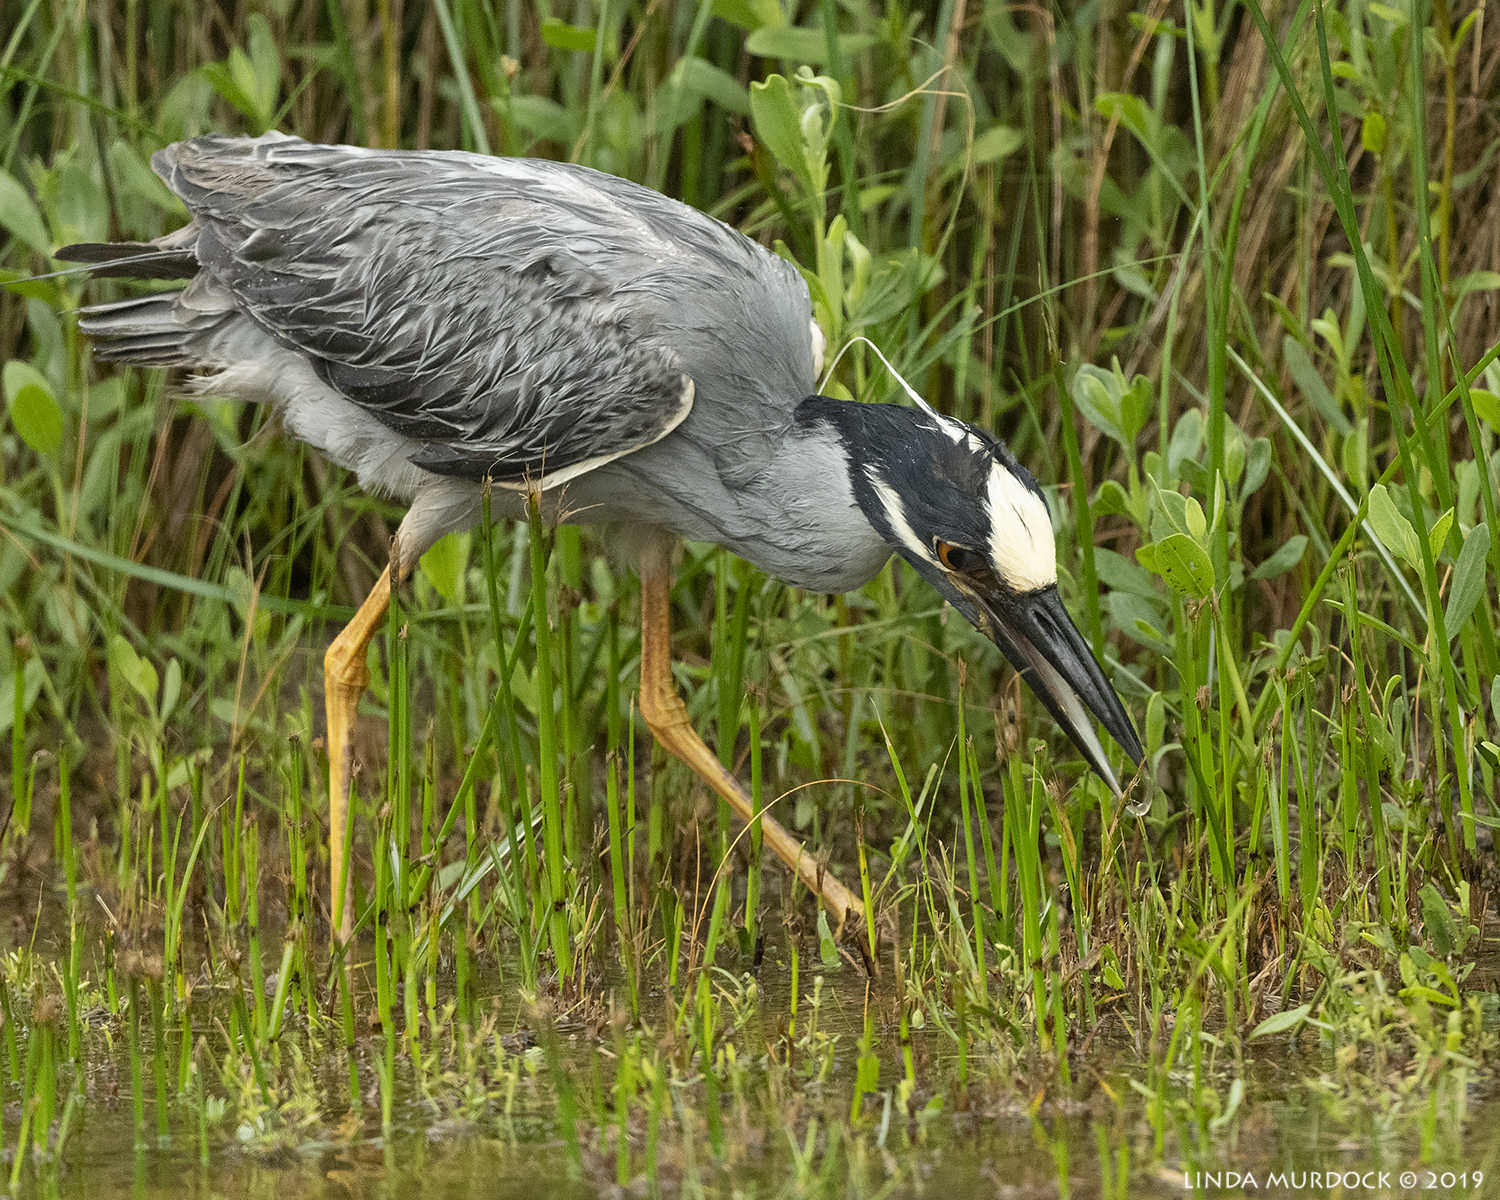 Yellow-crowned Night Heron in the ditch Nikon D850 with Nikkor 500 f/5.6 PF VR ~ 1/1250 sec f/5.6 ISO 2000